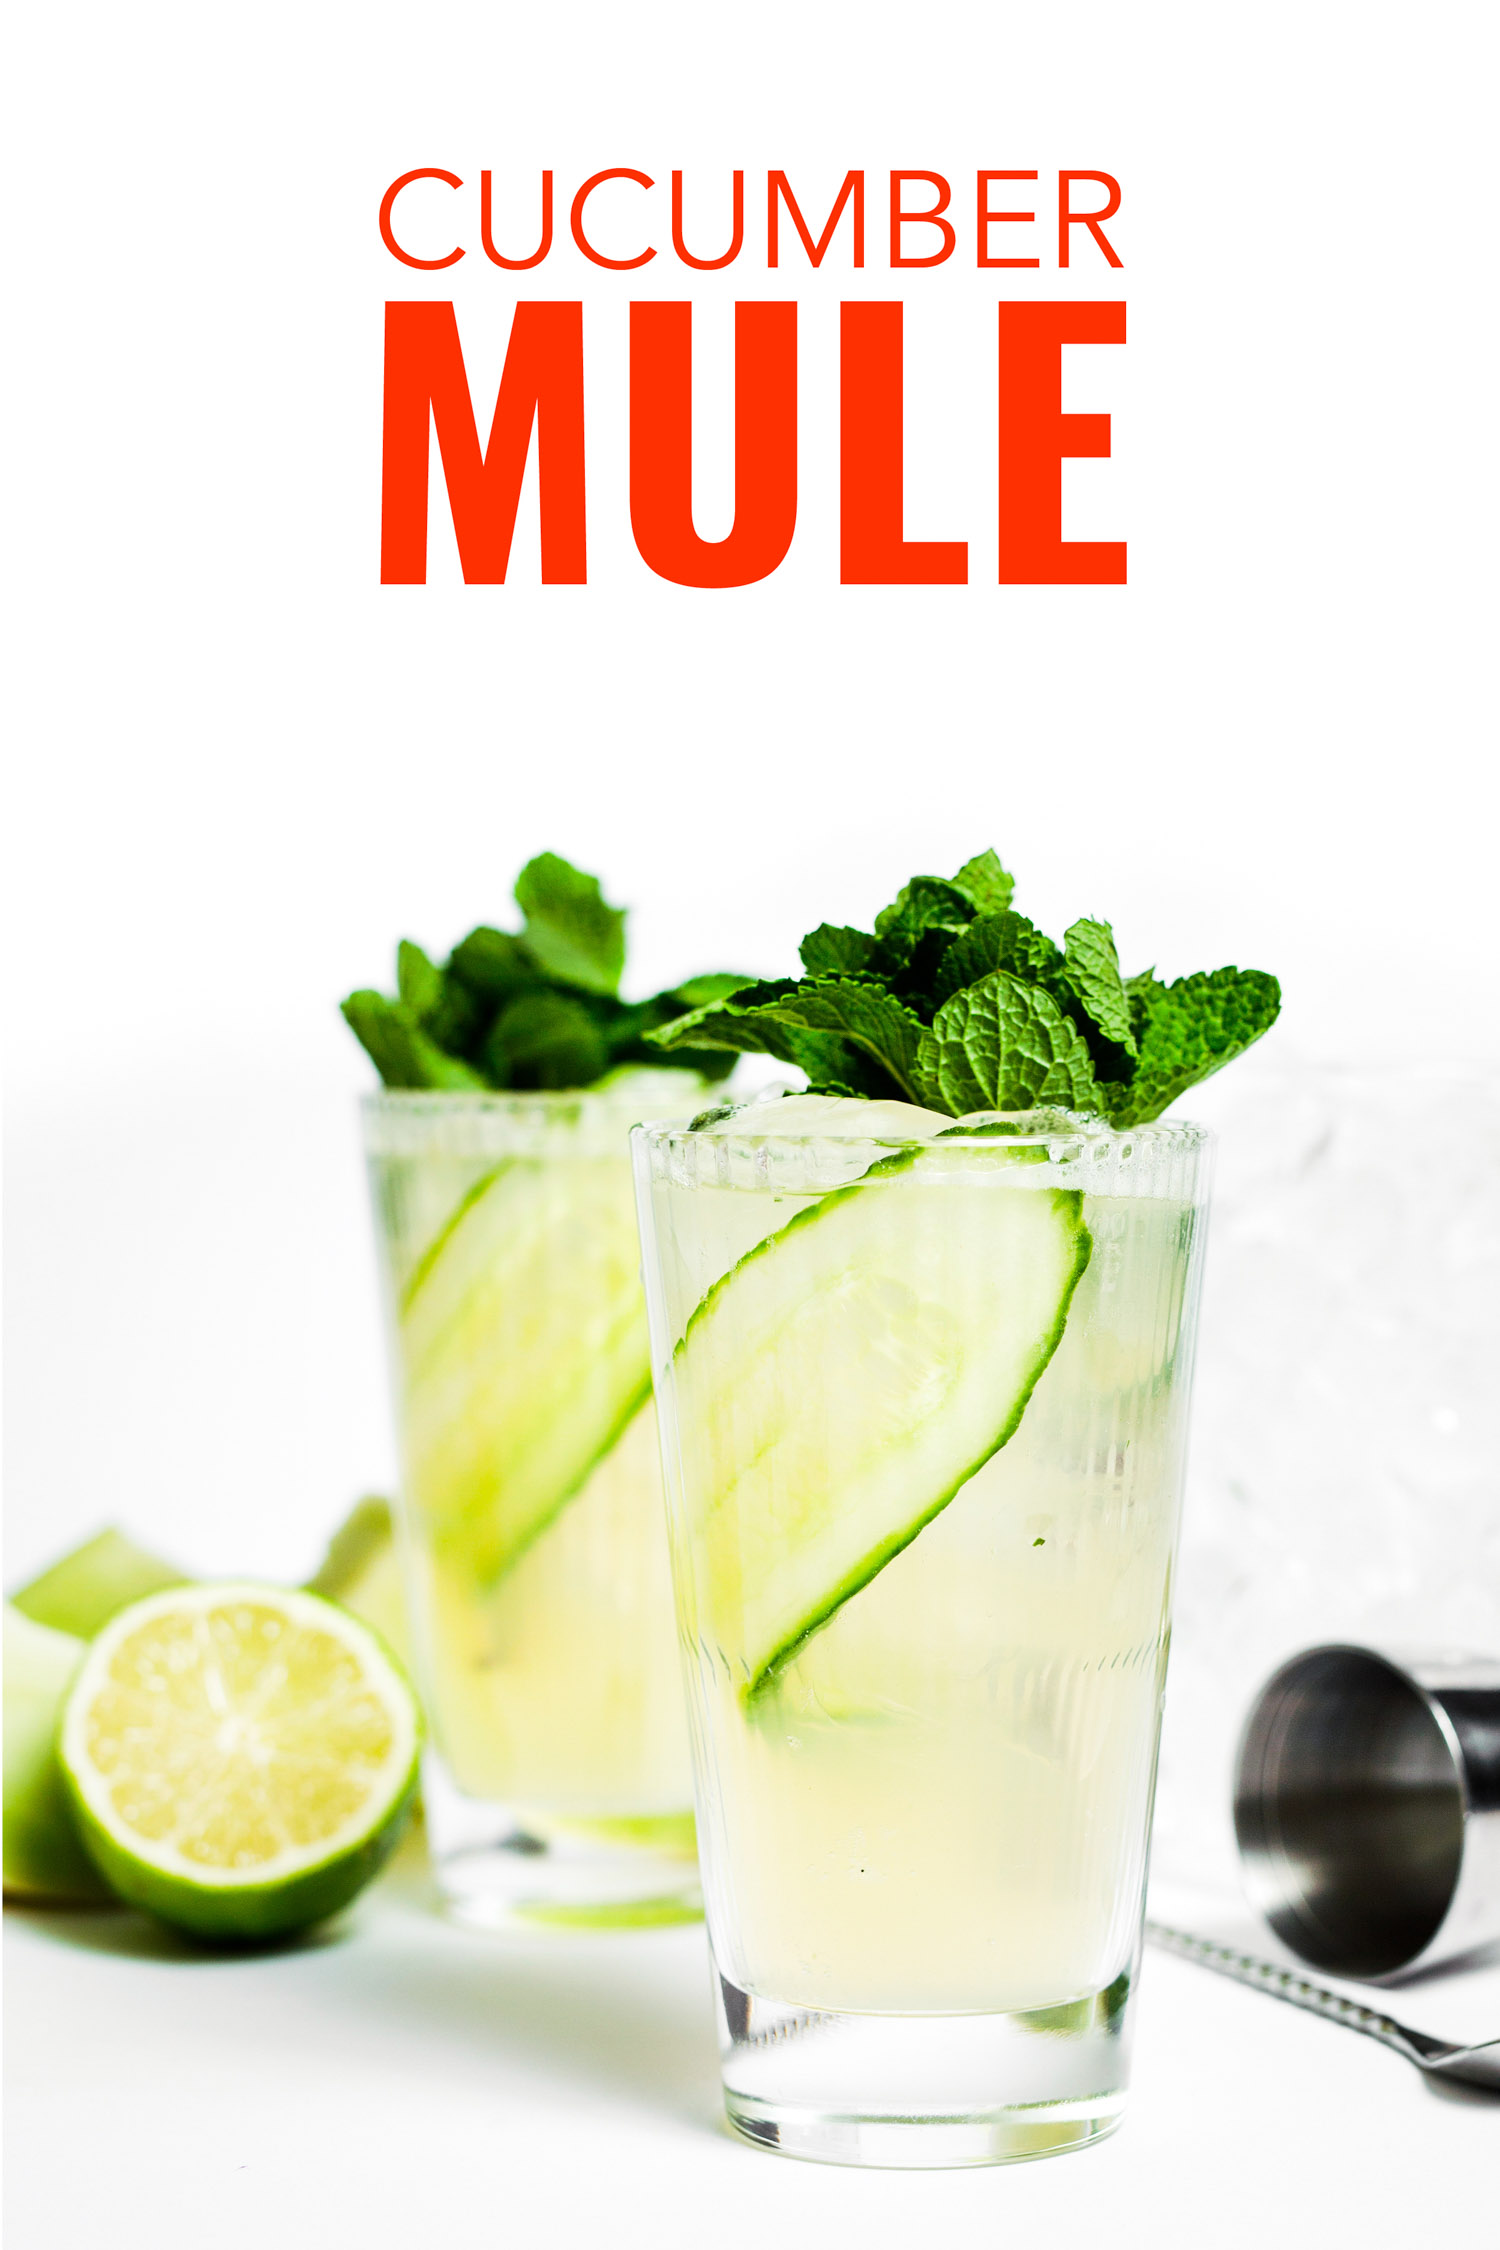 Easy cucumber mule recipe with gin instead of vodka.